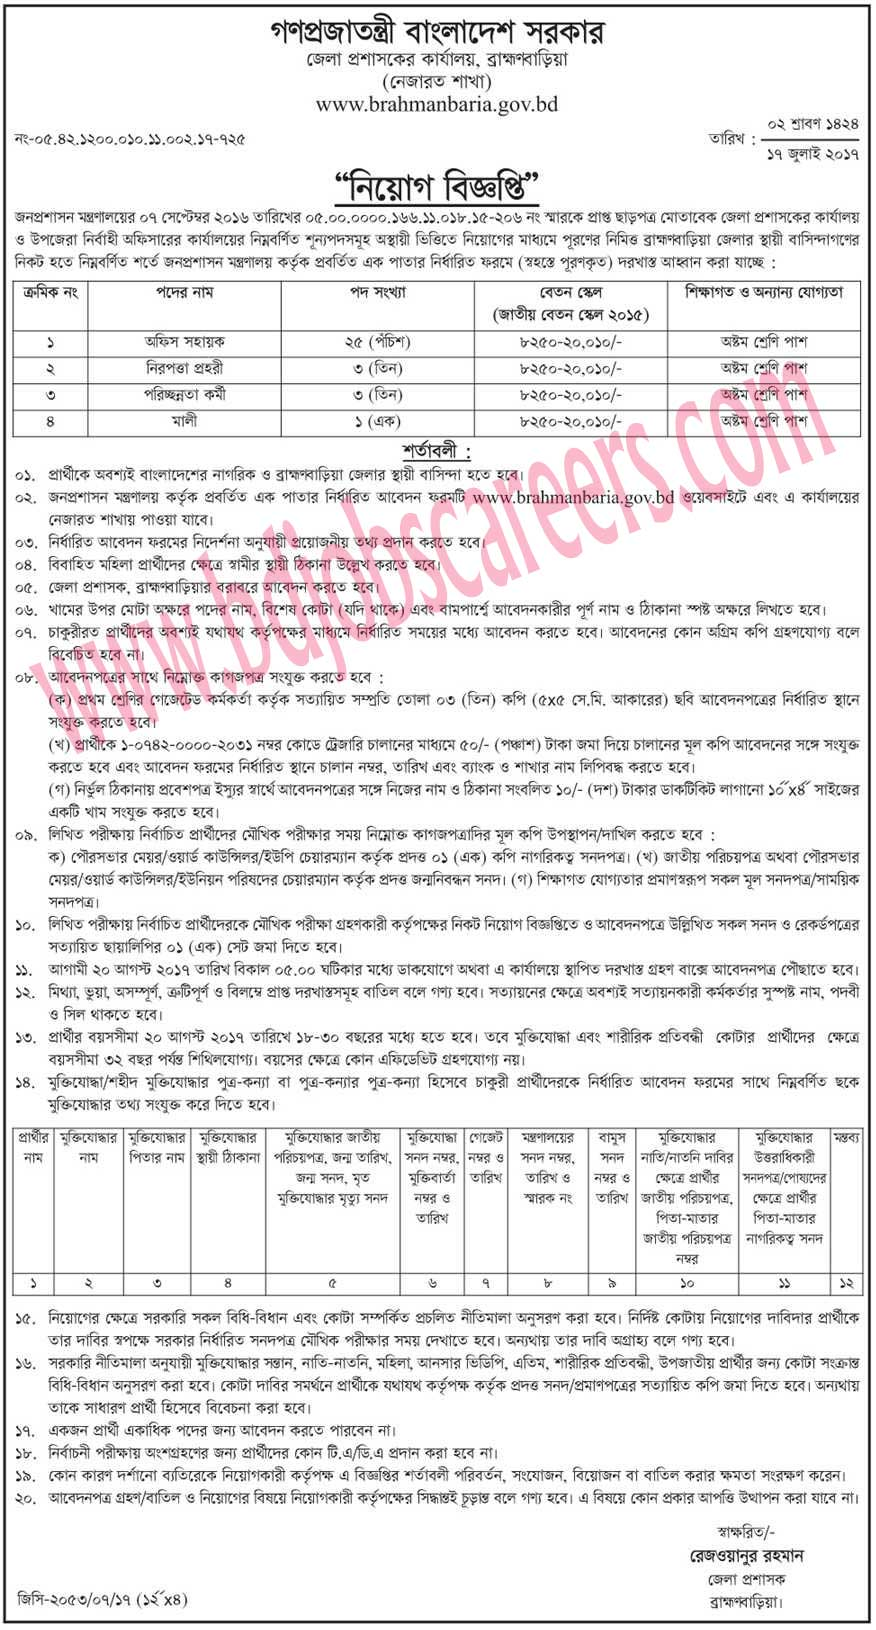 Brahmanbaria Deputy Commissioner's Office Job Circular 2017